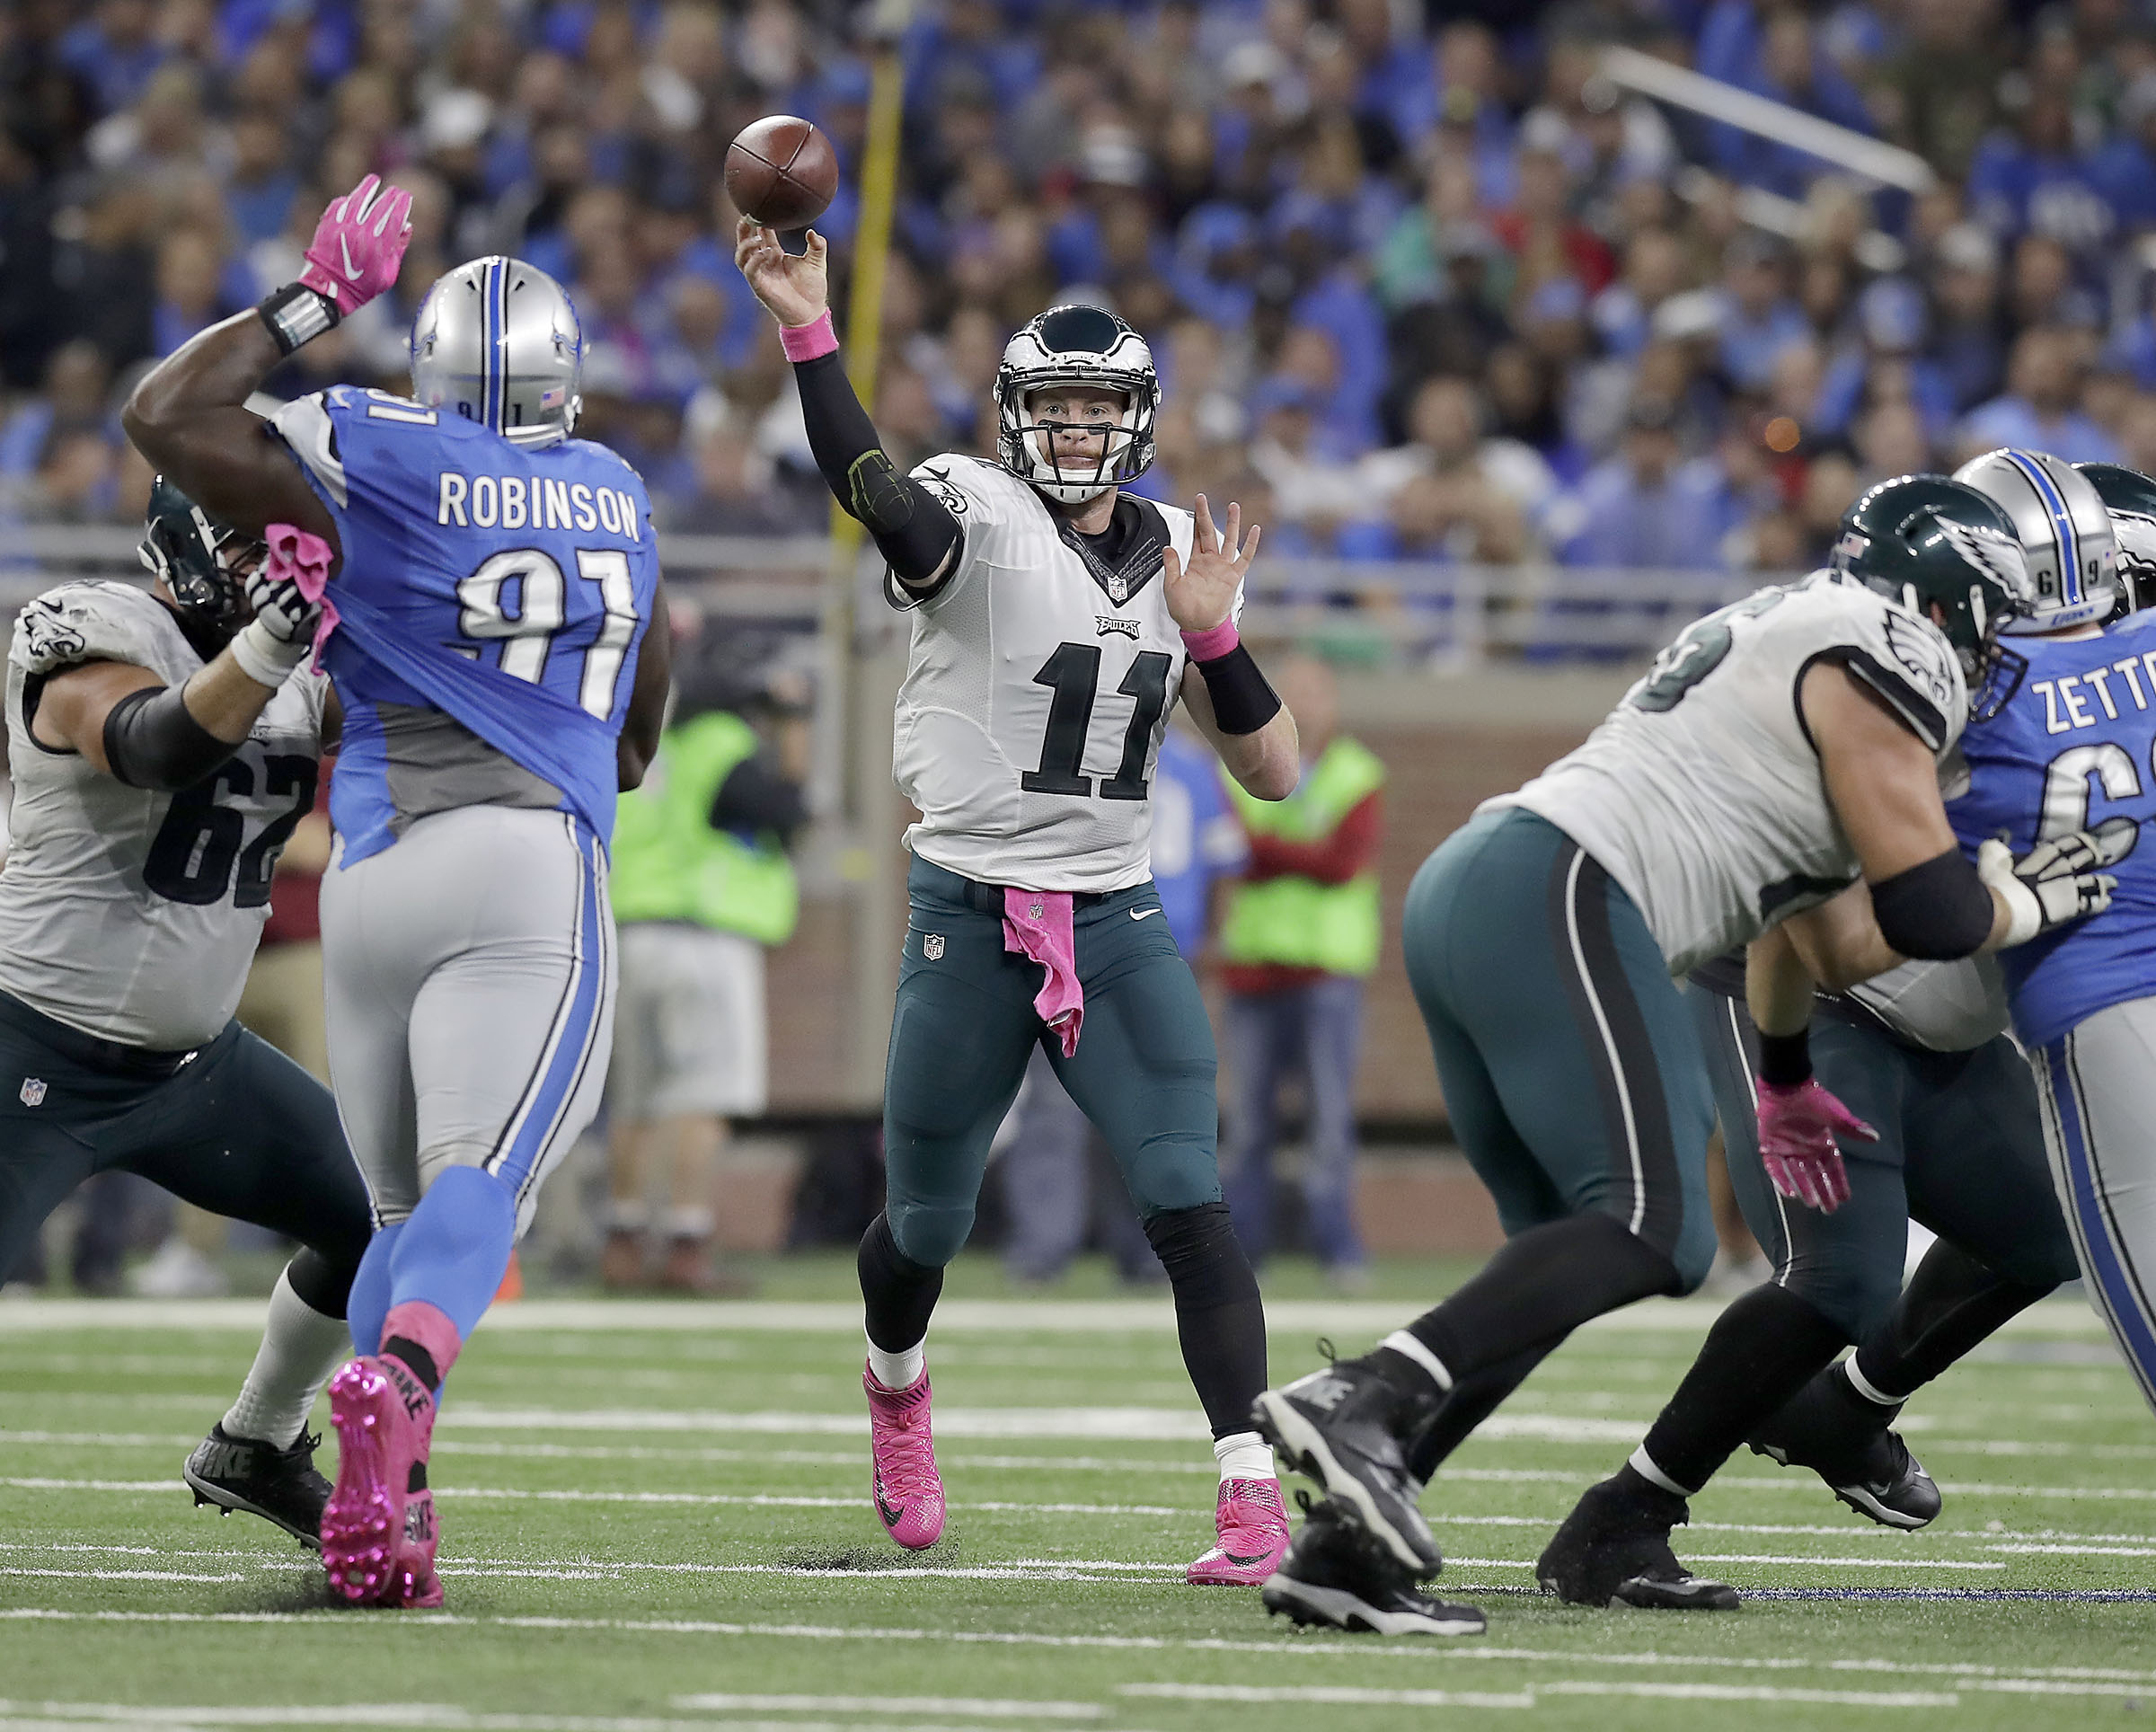 Eagles´ quarterback Carson Wentz throws the football during the fourth-quarter against the Detroit Lions on Sunday, October 9, 2016 in Detroit. YONG KIM / Staff Photographer